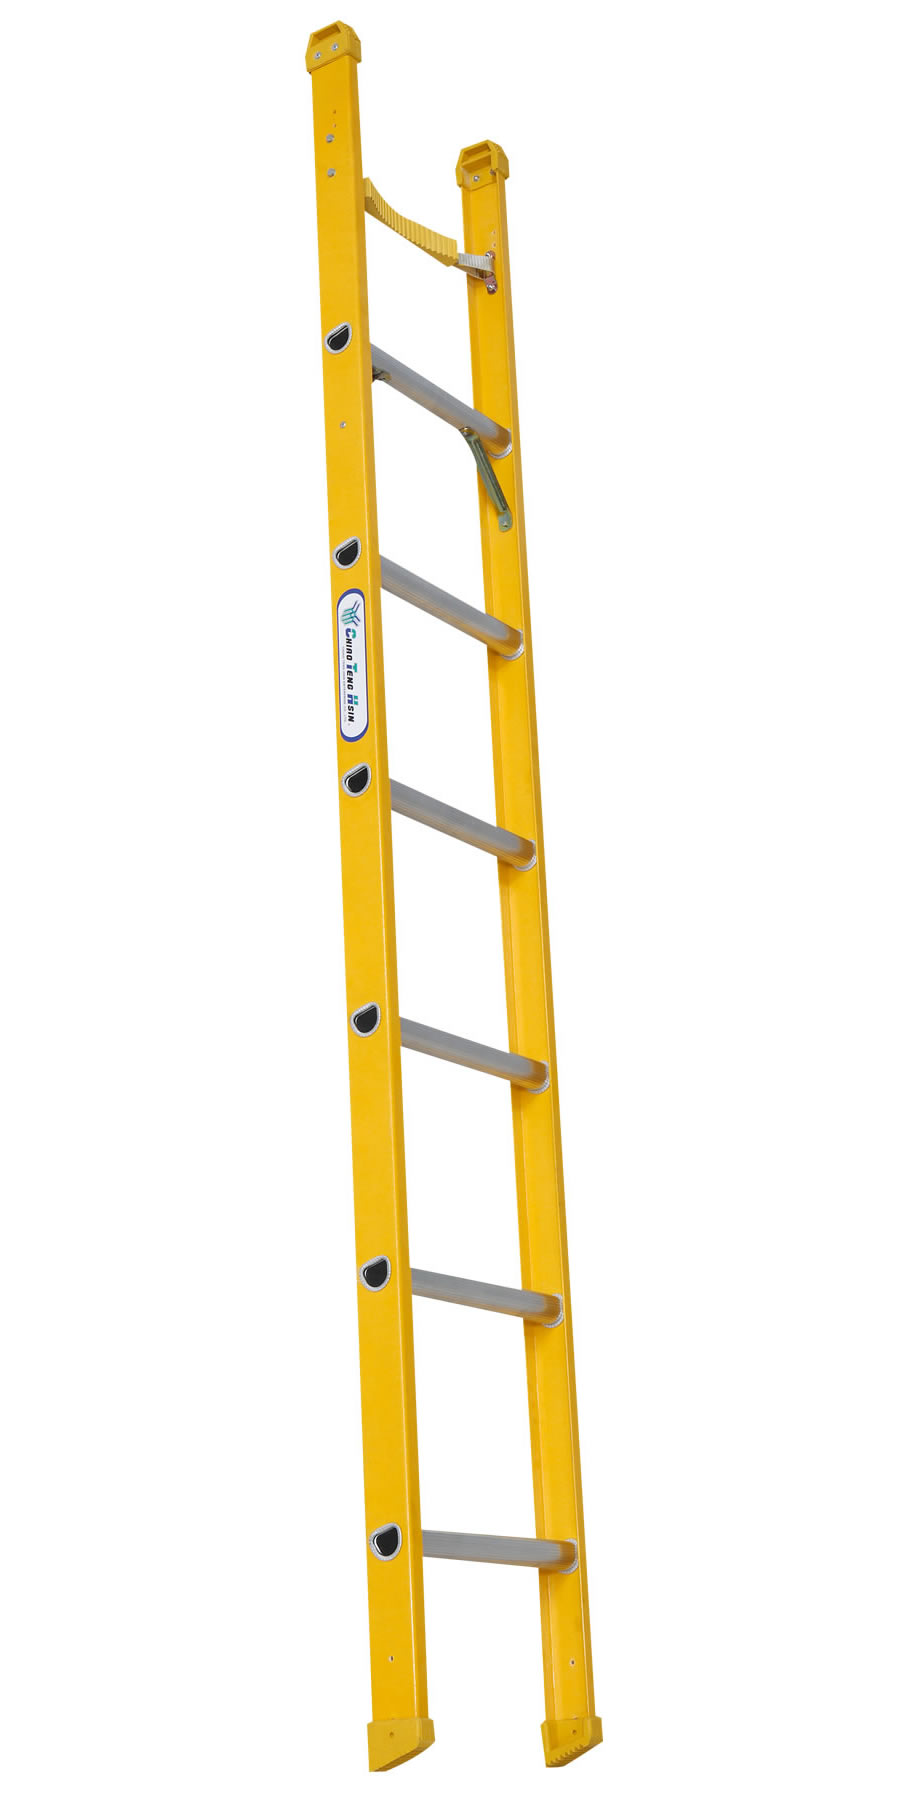 Fus Straight Ladder Series Chiao Teng Hsin Enterprise Co